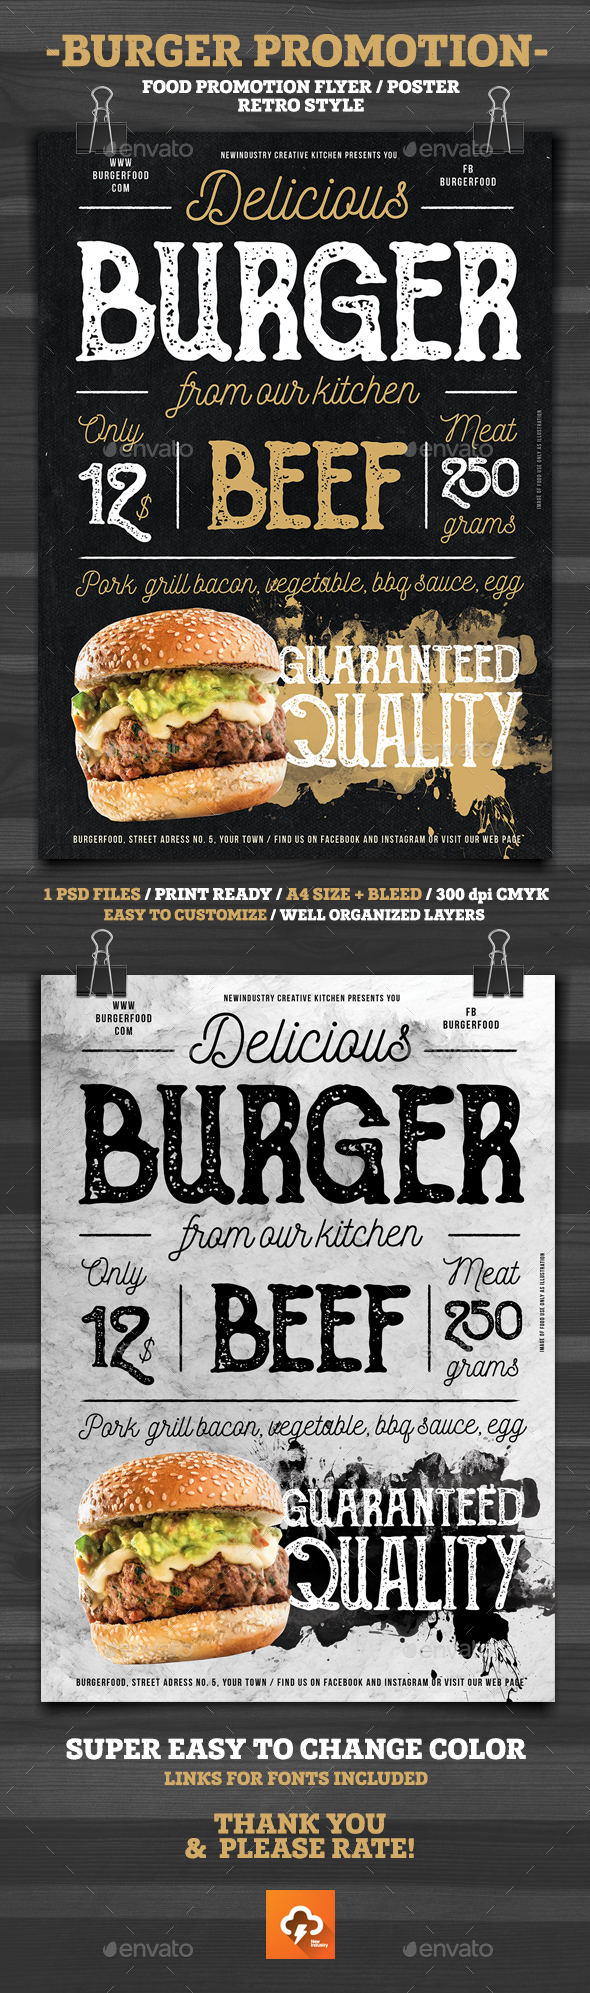 Burger Promotion Flyer Poster - Restaurant Flyers